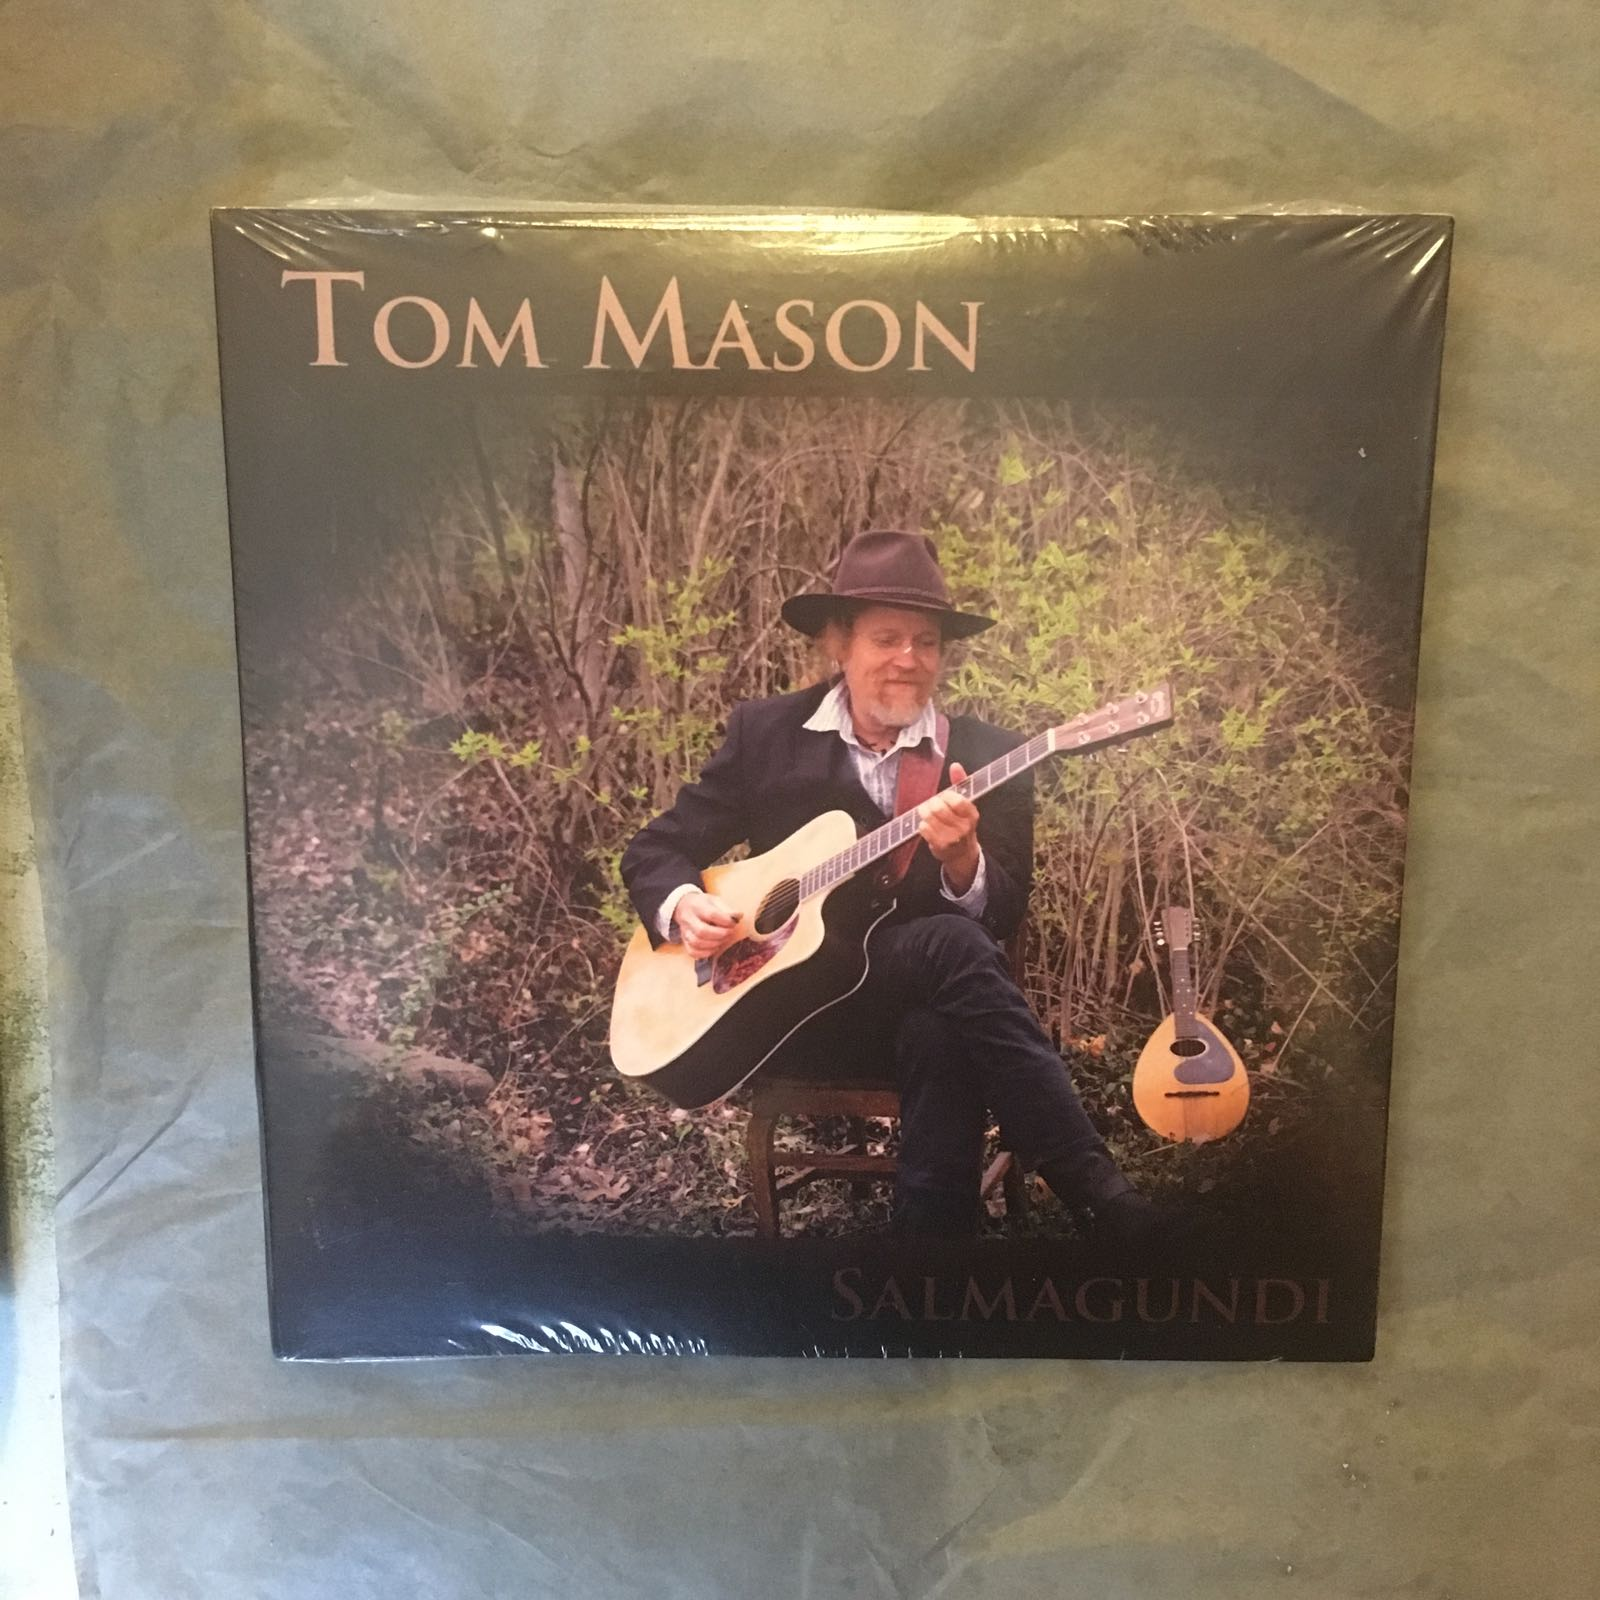 CD - Tom Mason, Salmagundi